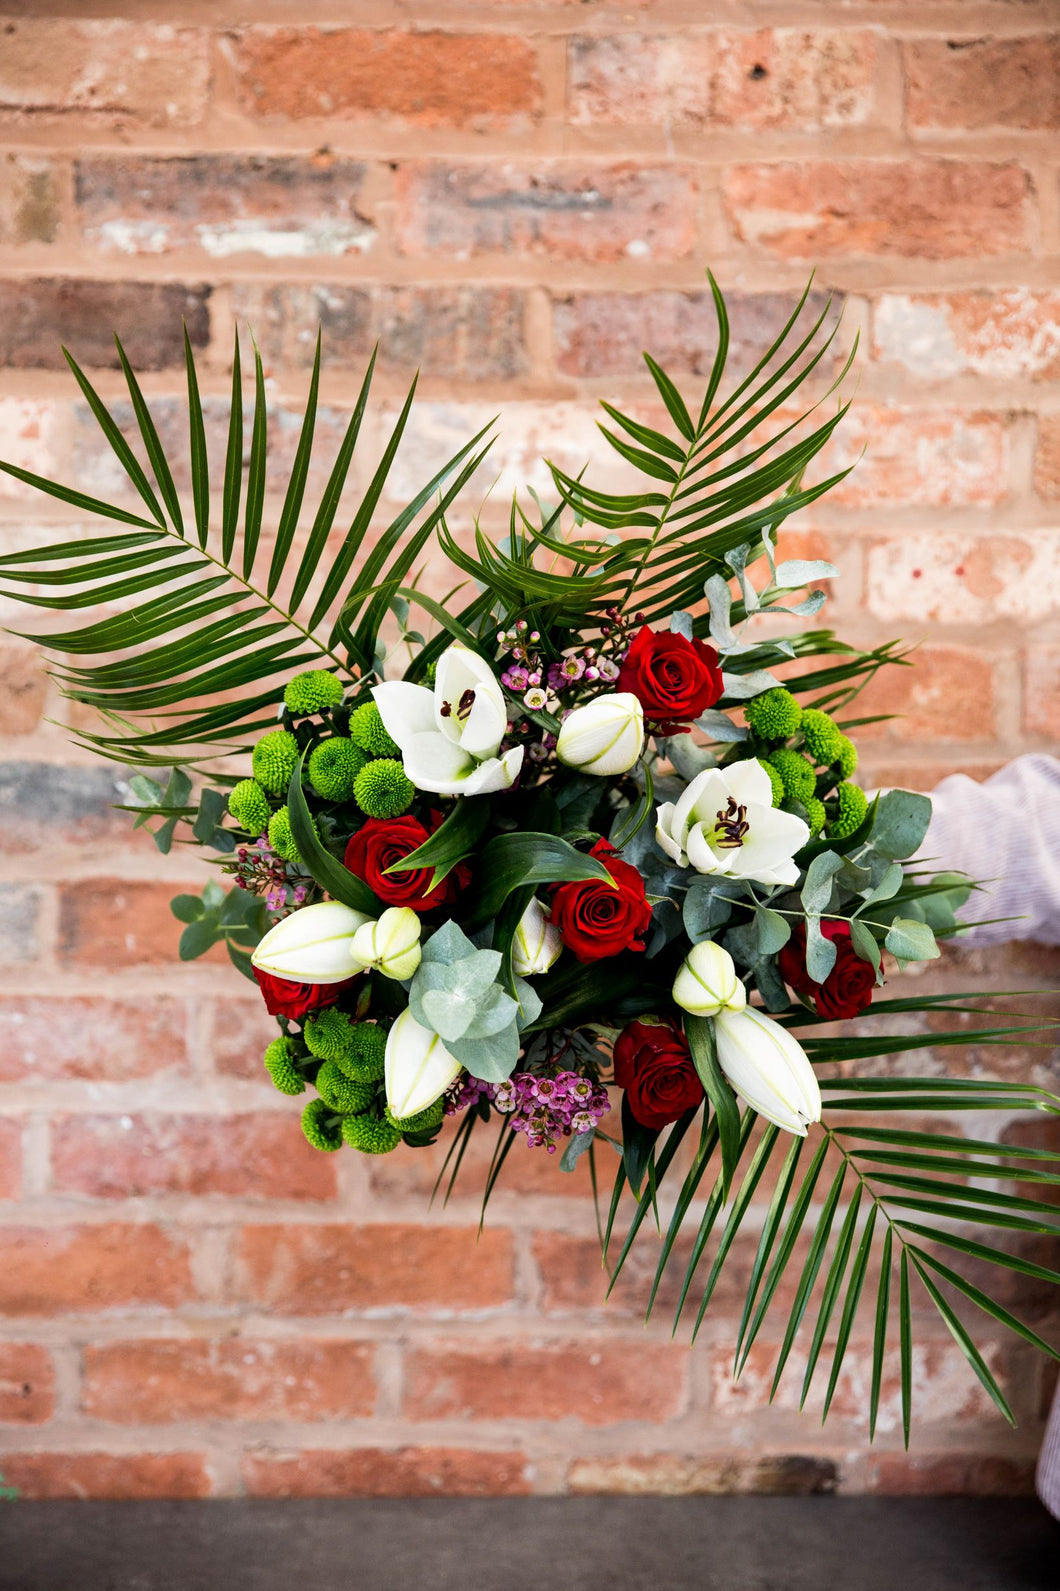 white lily, red rose, eucalyptus in a large hand tied bouquet